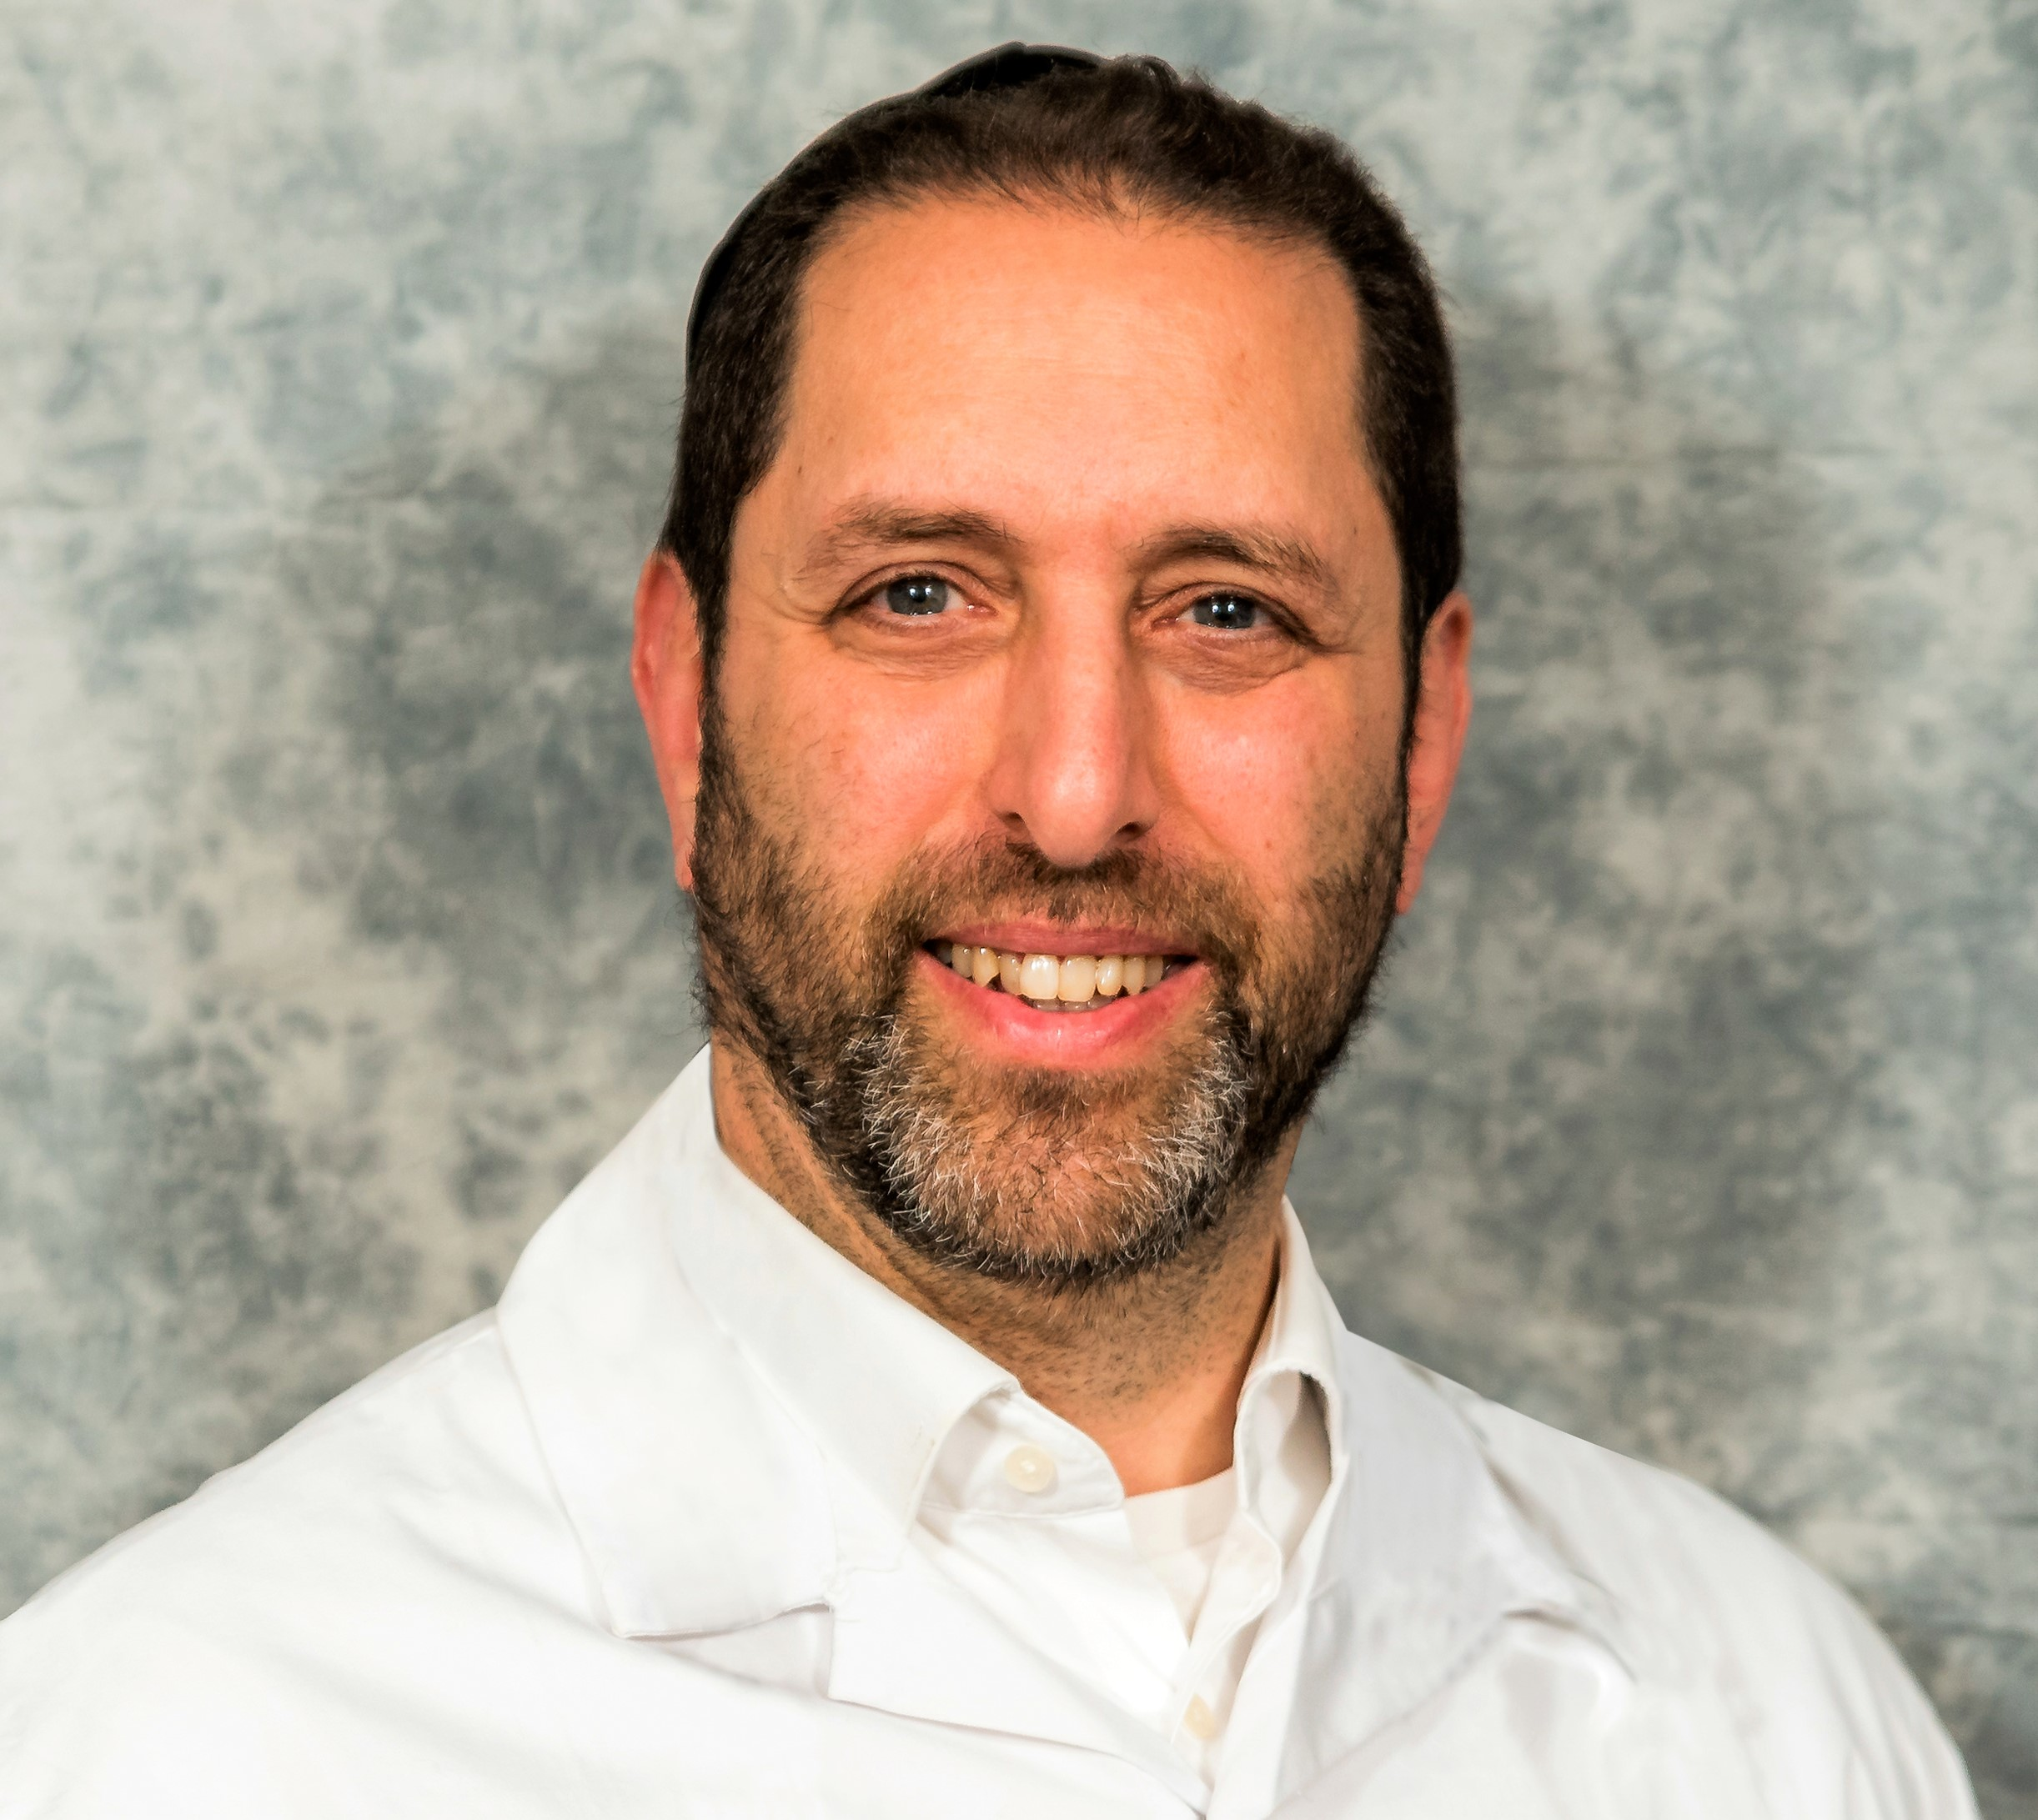 Chiropractic Care and Functional Medicine in Israel with Dr. Reuven Rosenberg